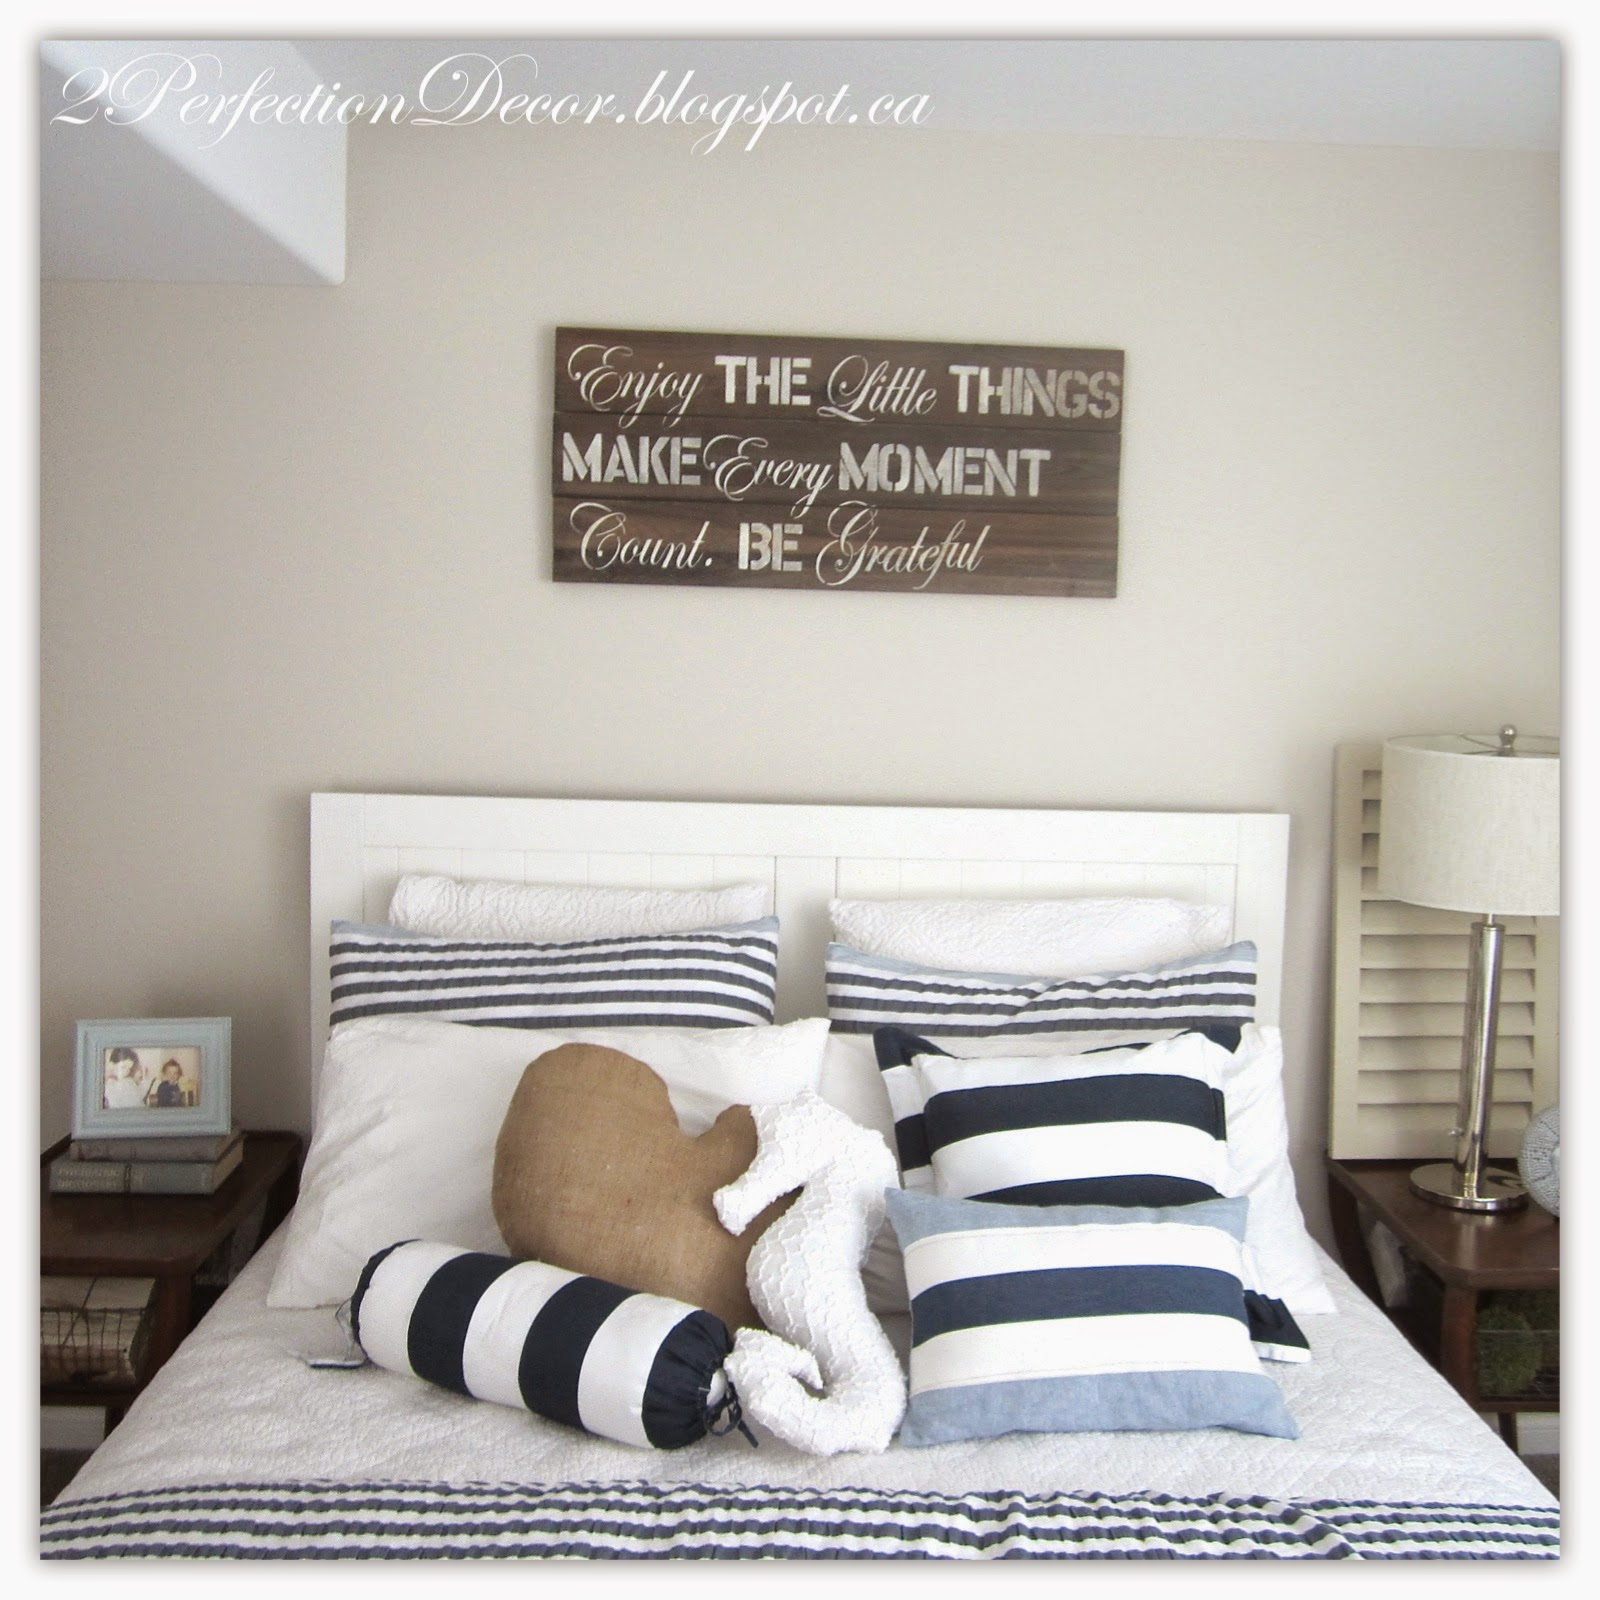 2perfection Decor Our Basement Guest Bedroom Reveal